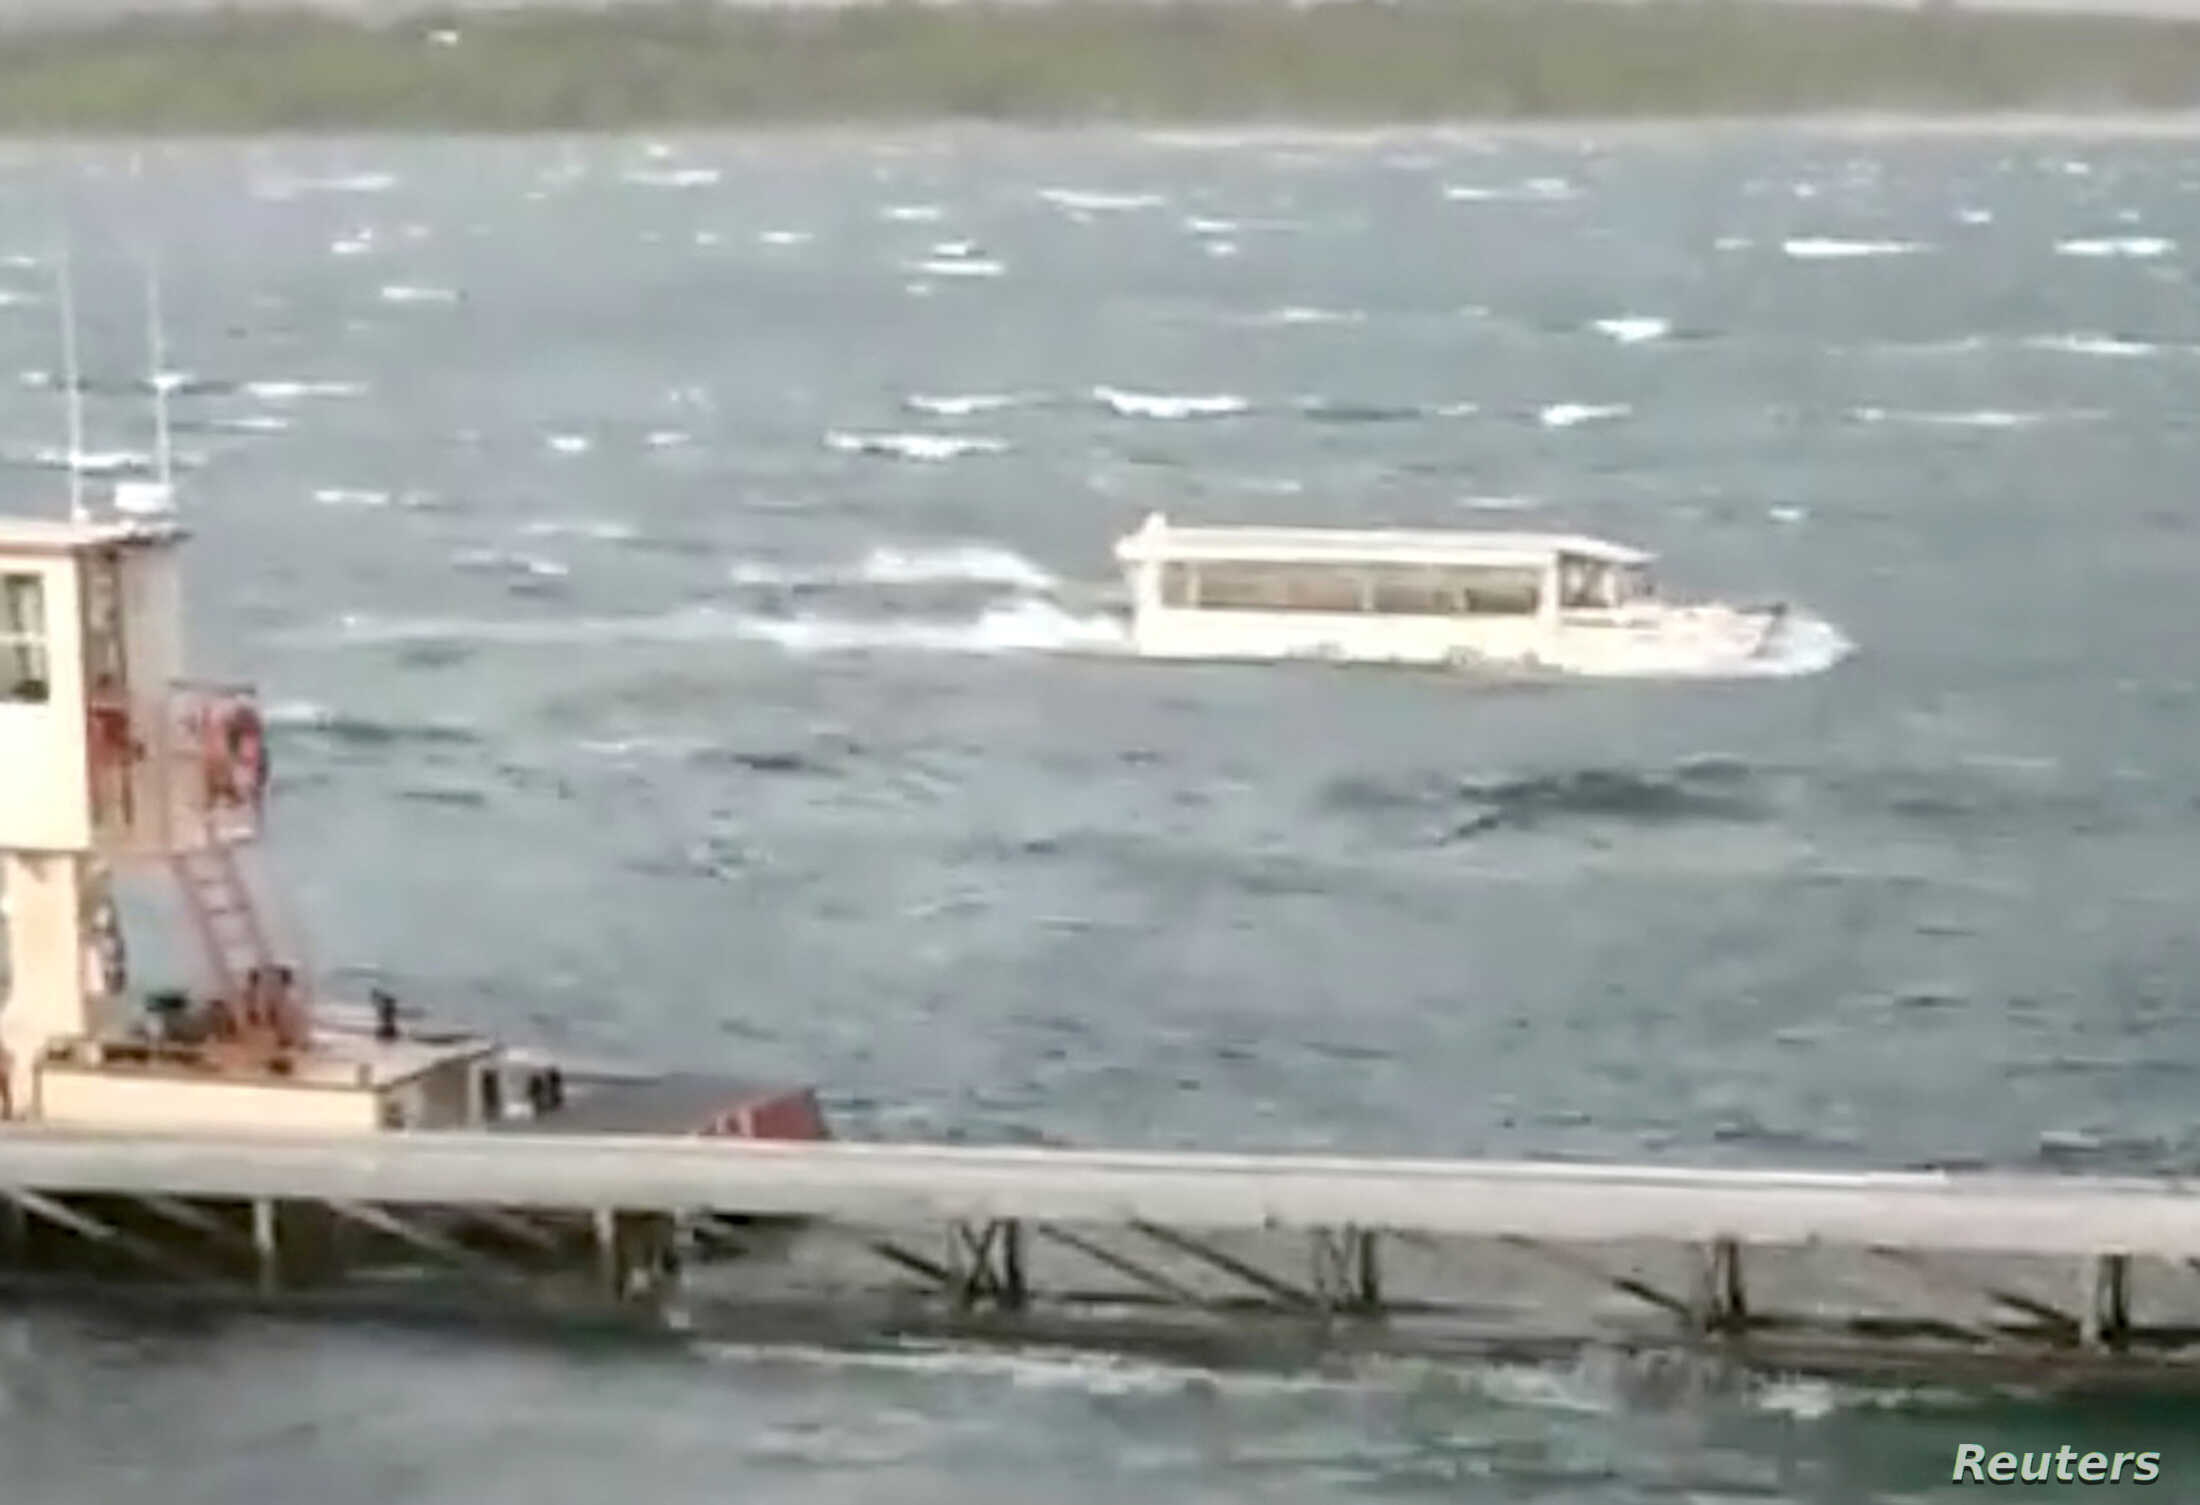 NTSB: Recordings Show Weather Change Before Boat Sank